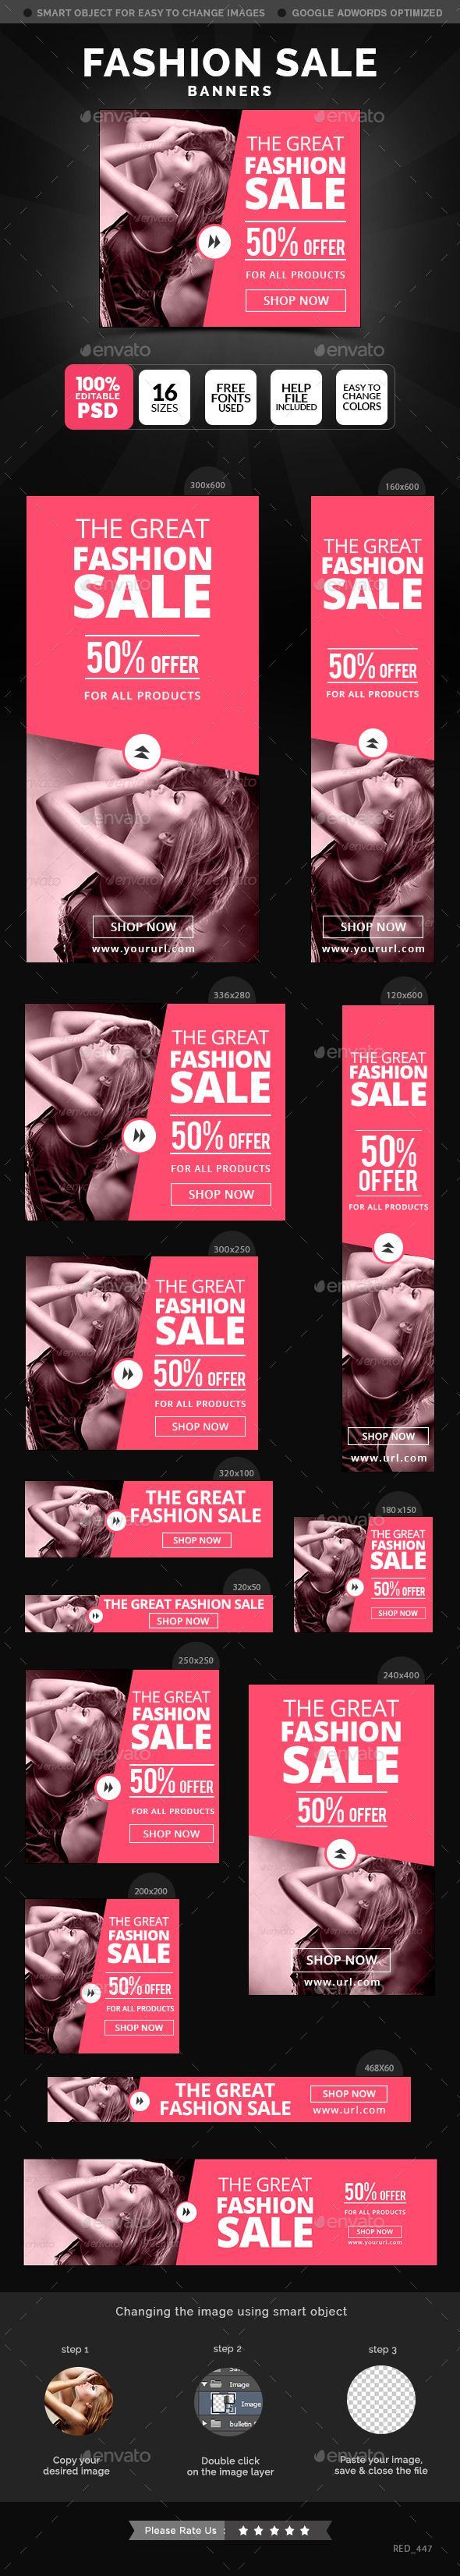 Fashion Sale Banners Template #design #ads Download: http://graphicriver.net/item/fashion-sale-banners/12375653?ref=ksioks